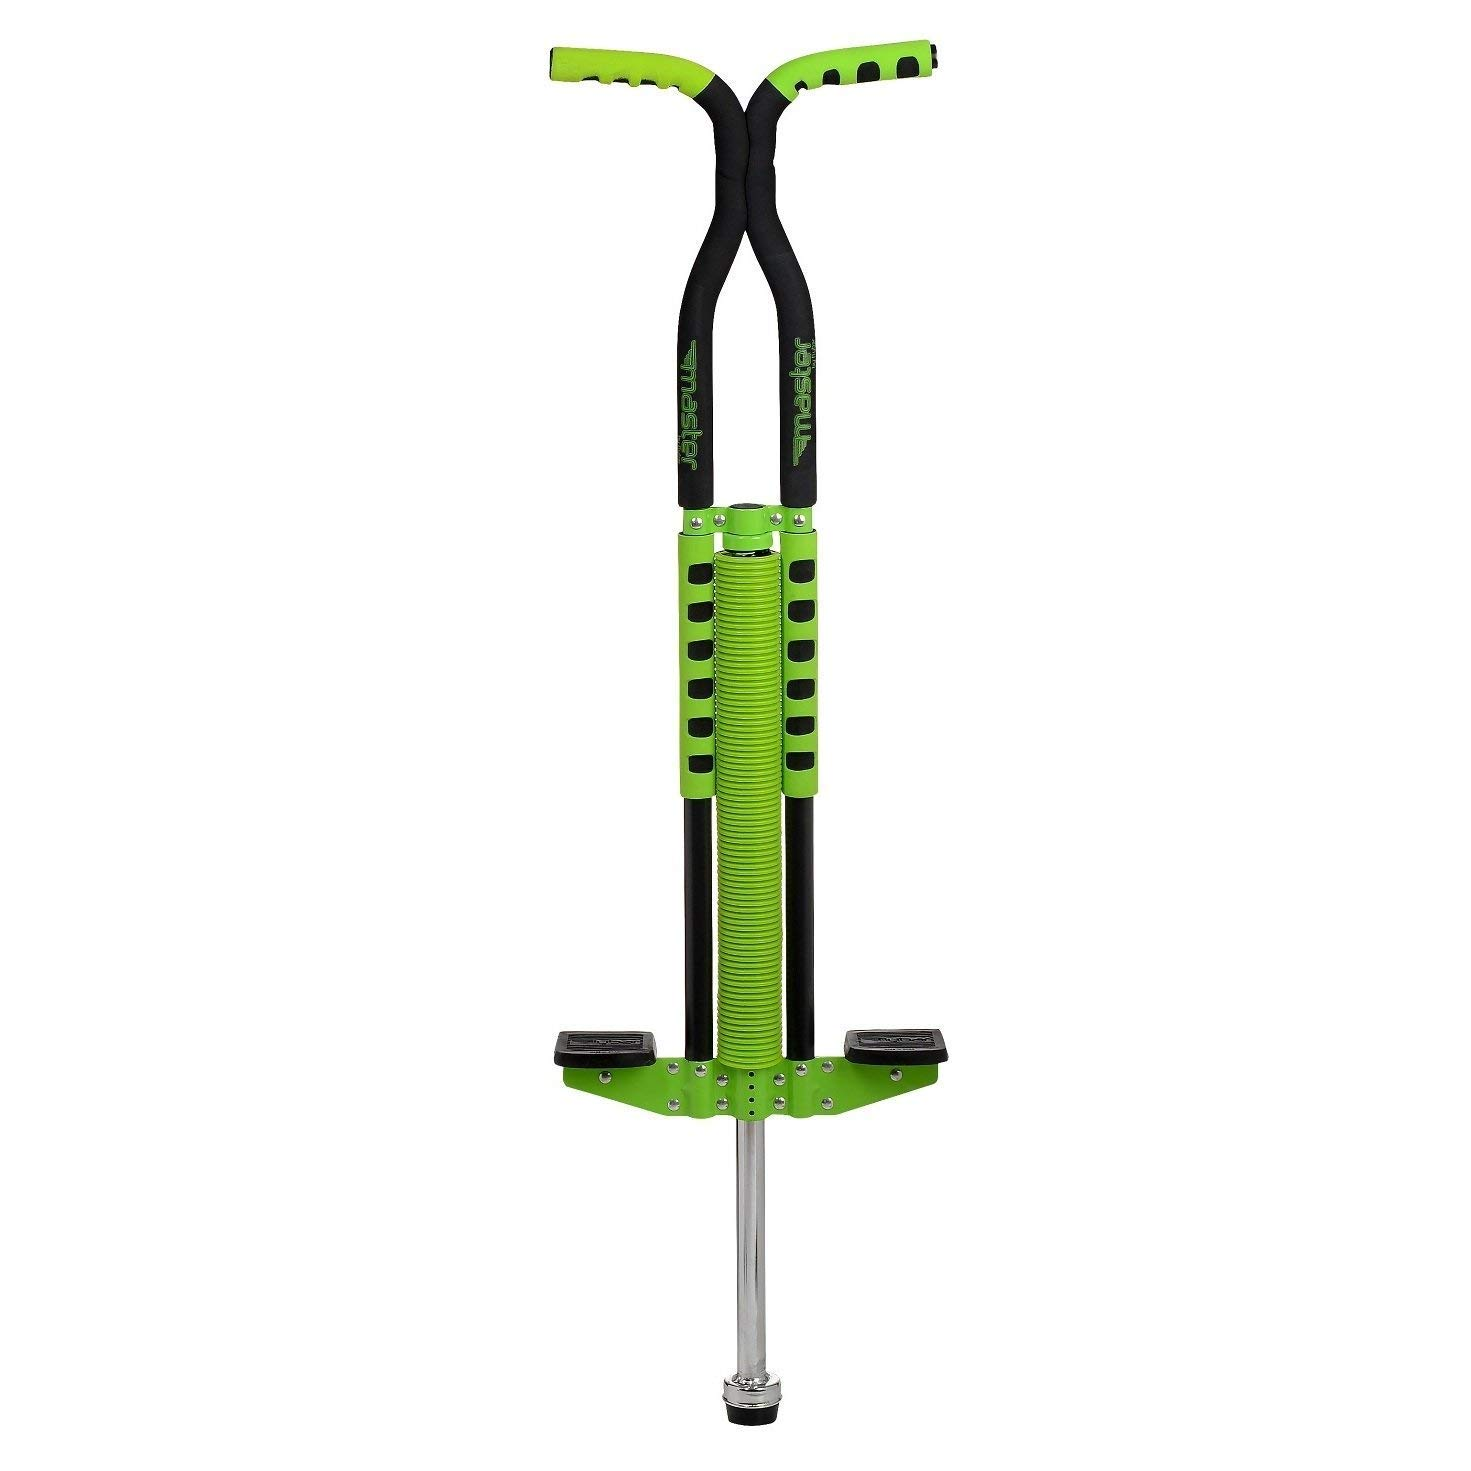 Renewed Fun Quality Pogostick By The Original Pogo Stick Company Flybar Foam Master Pogo Stick For Kids Boys /& Girls Ages 9 /& Up 80 to 160 Lbs